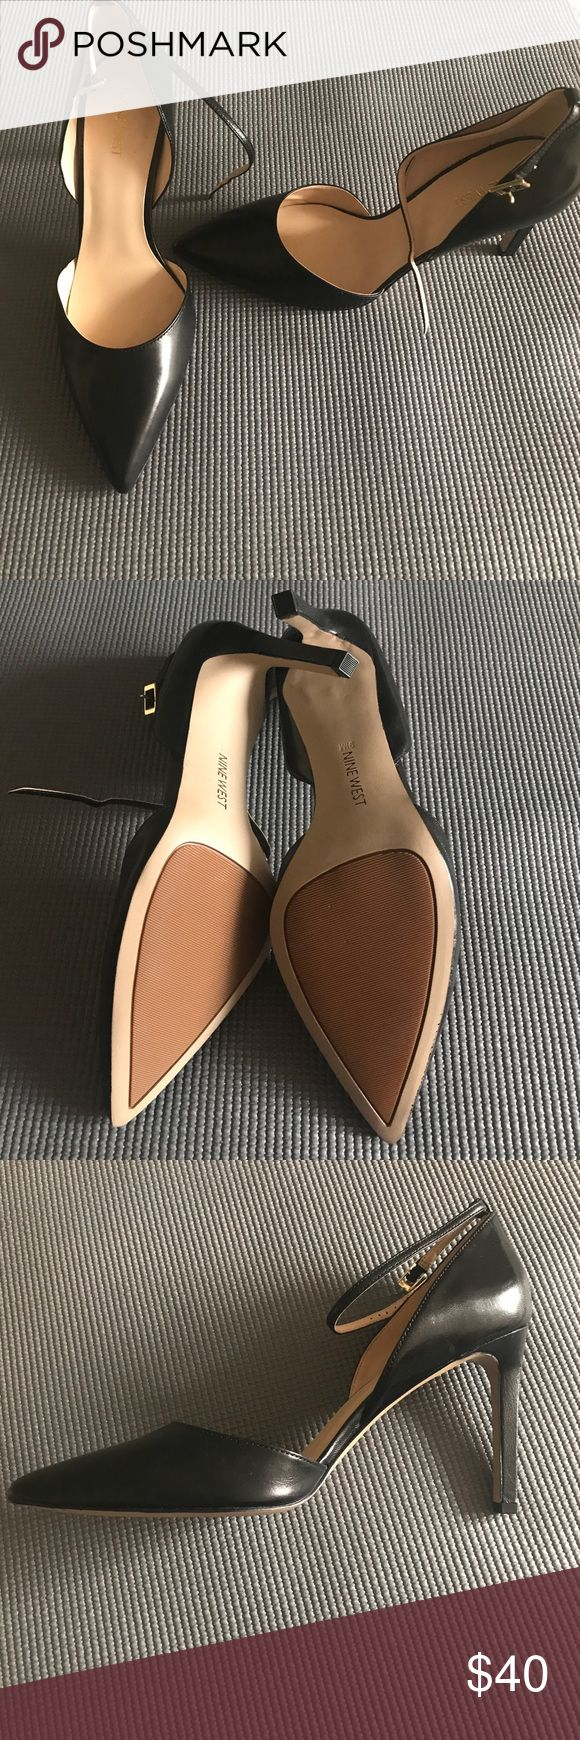 Nine West pointed toe ankle strap pumps Never worn! Nine West black pumps with a thin ankle strap. Great for work or formal occasions! About a three inch heel. Nine West Shoes Heels